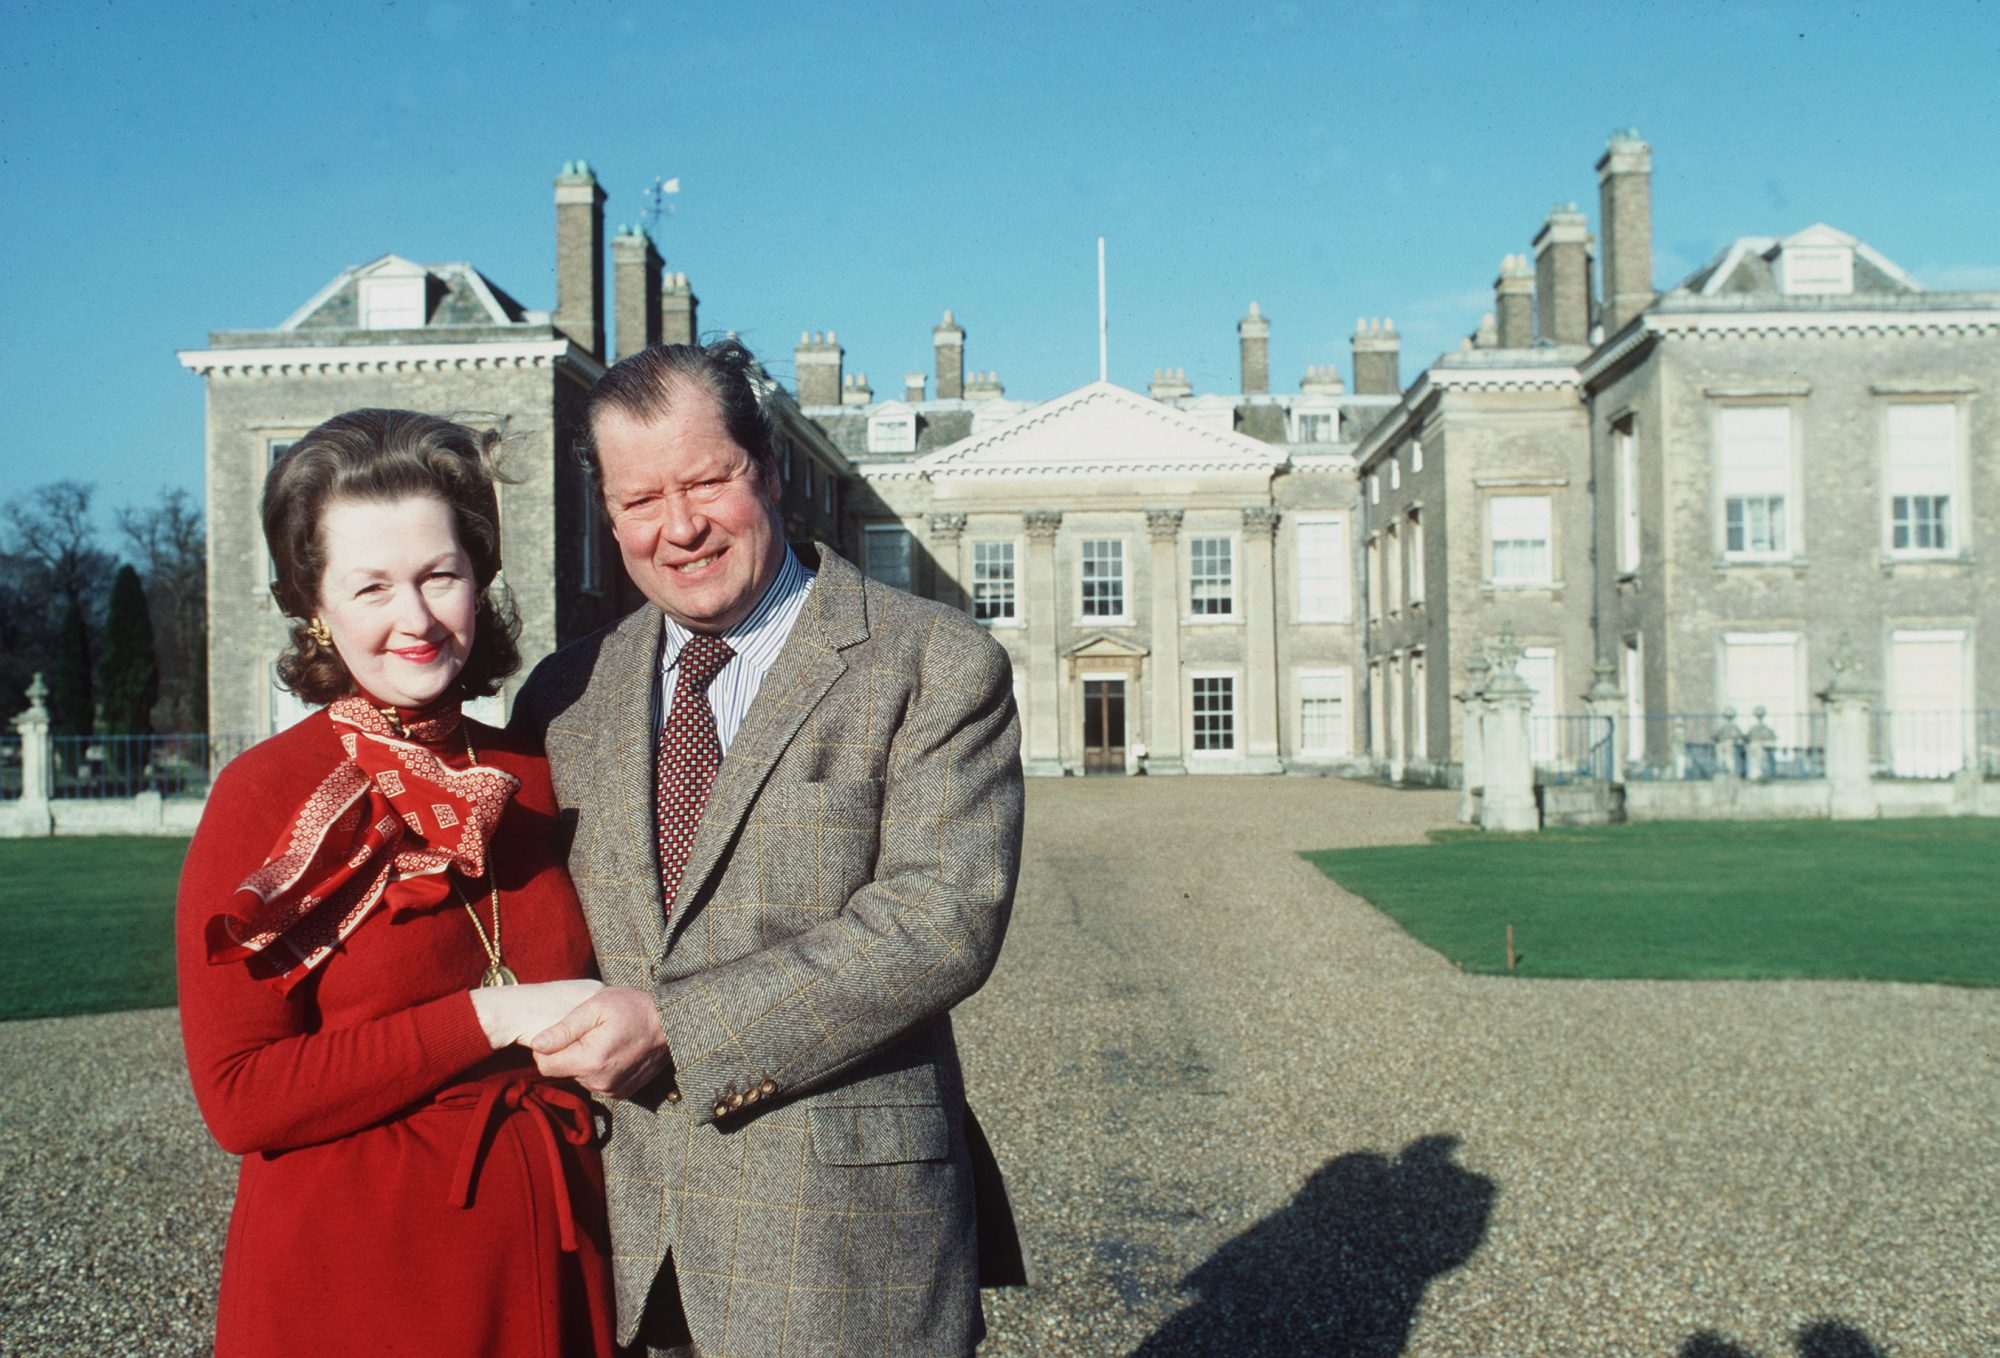 ALTHORP, UNITED KINGDOM - JANUARY 01: Earl Spencer And His Wife Raine In Front Of Their Home Althorp House (actual Date Uncertain) At The Time Of The Romance Between Lady Diana Spencer And The Prince Of Wales. (raine Mccorquodale, Countess Raine De Chambrun). (Photo by Tim Graham/Getty Images)